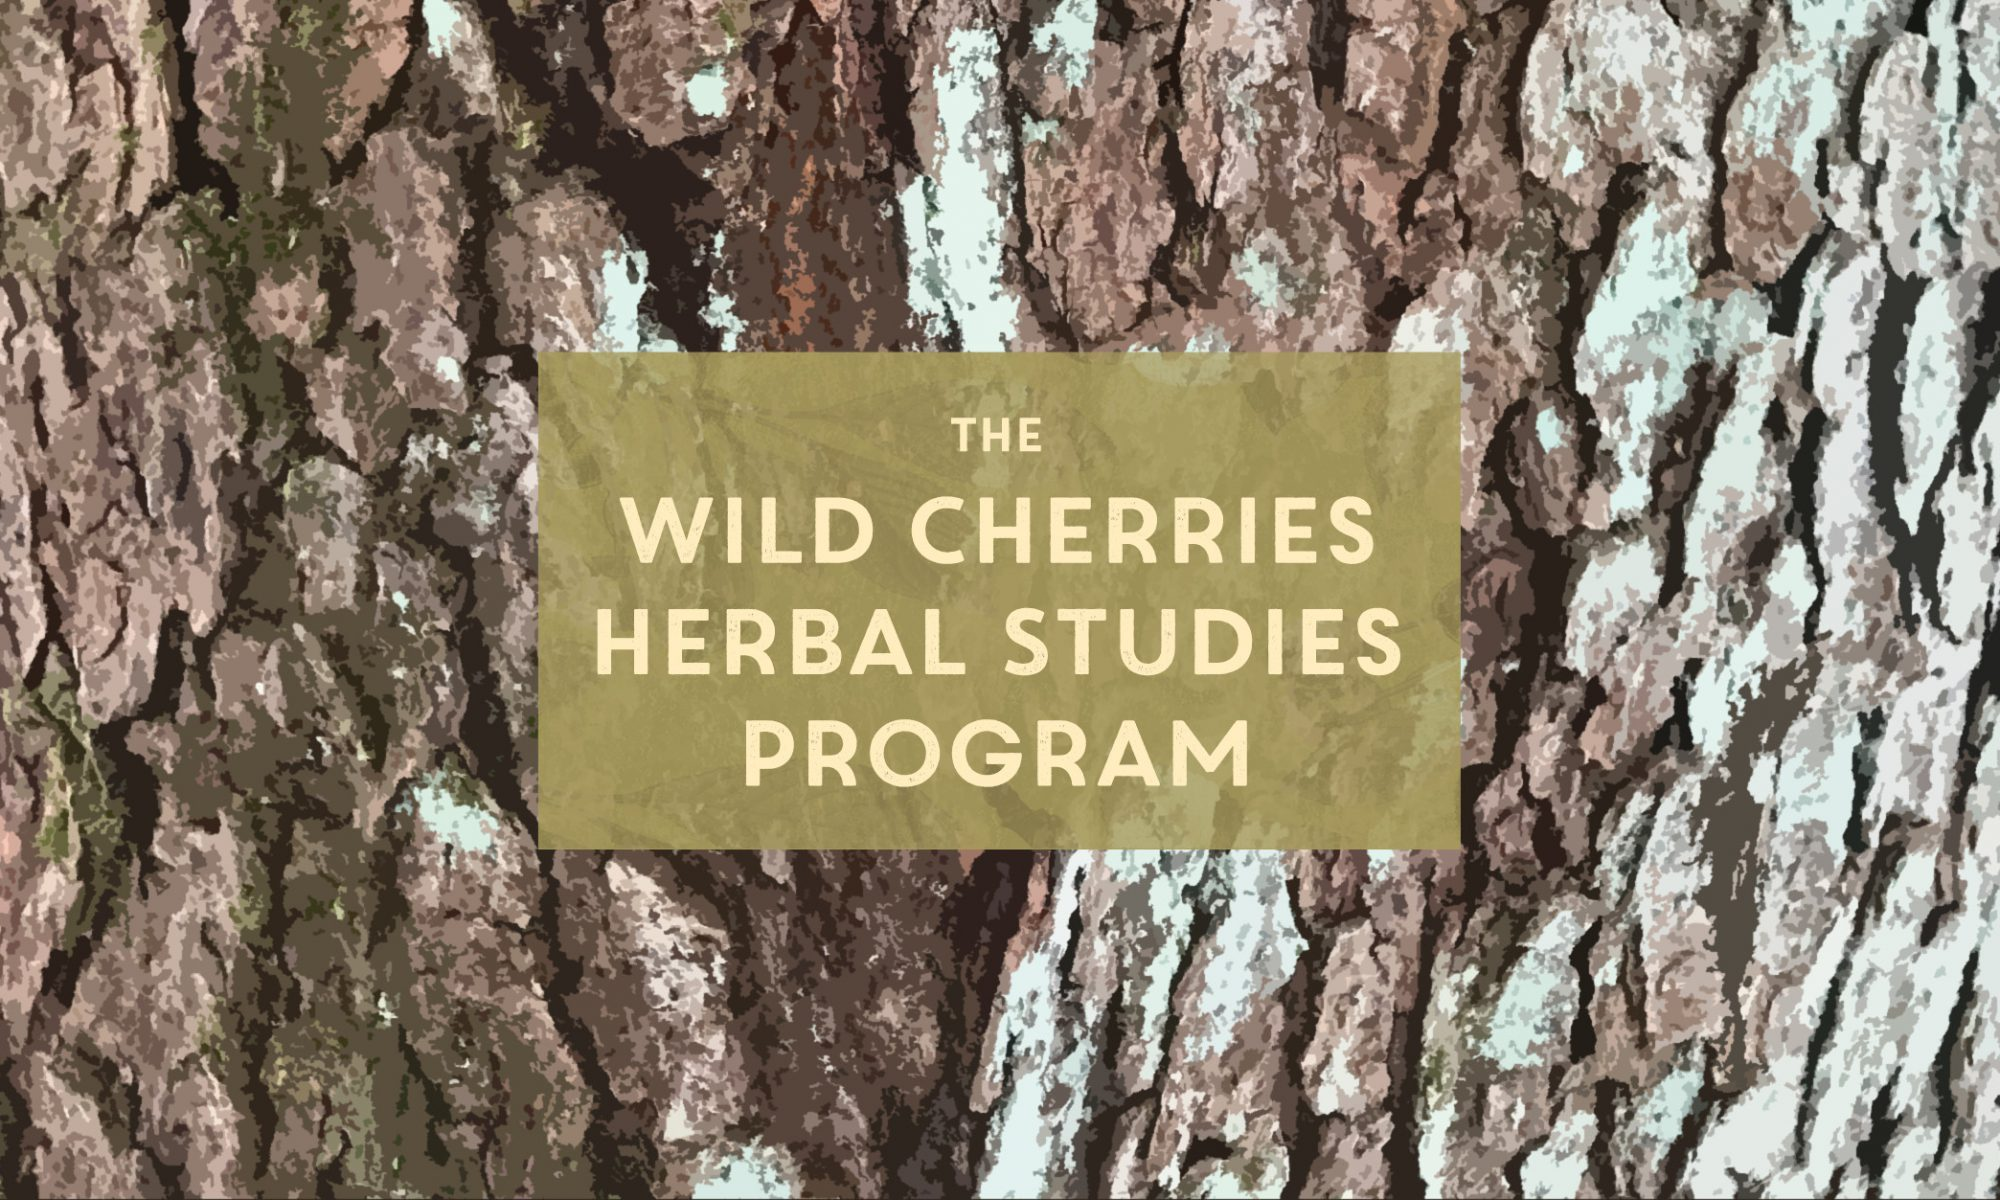 Text: Wild Cherries Herbal Studies Program, set on a background of cherry bark